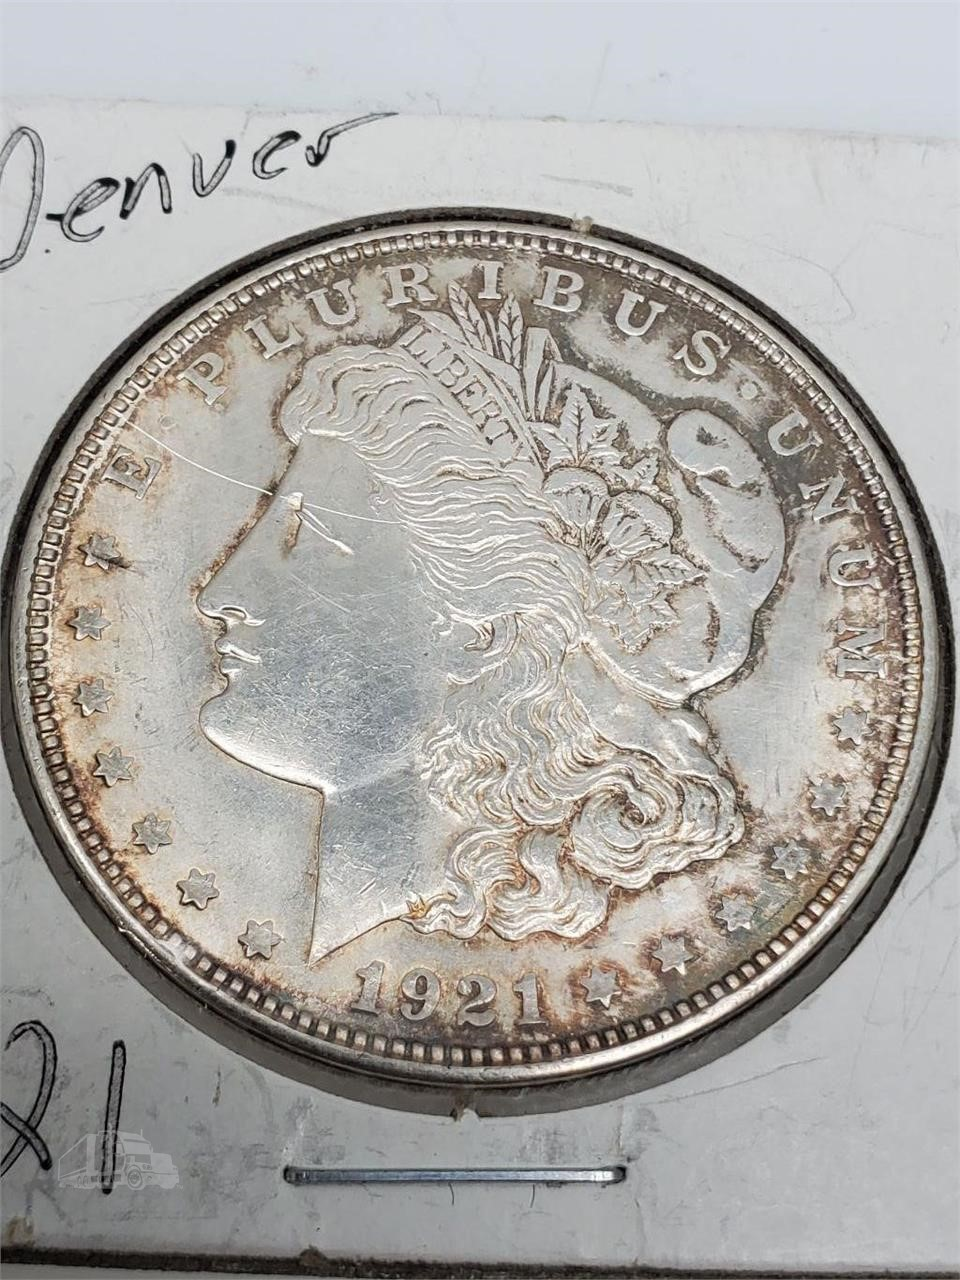 1921 D Morgan Silver Dollar Other Items For Sale 2 Listings Truckpaper Com Page 1 Of 1